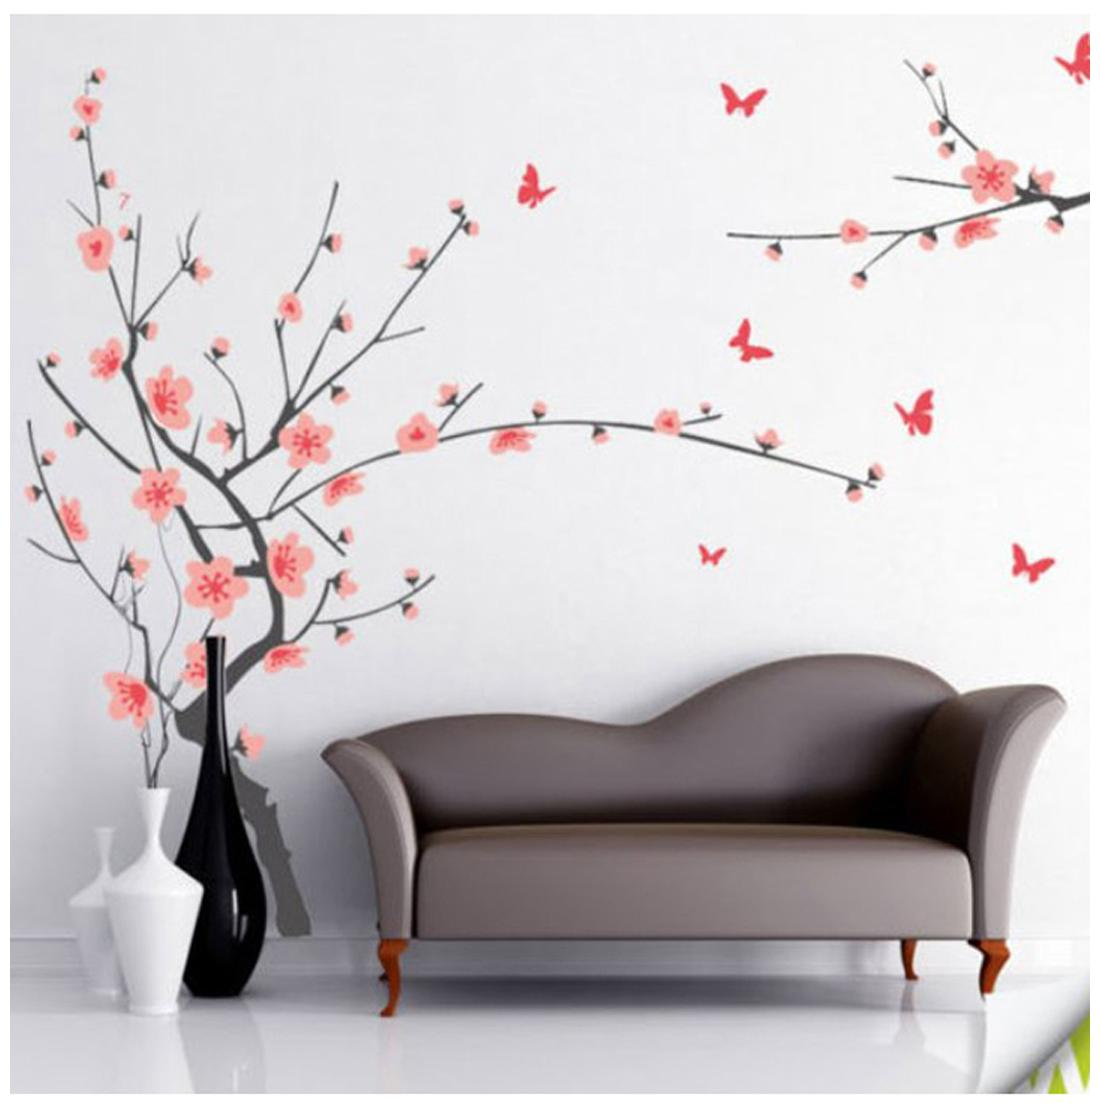 Wall Stickers Bear Swing 3d Wall Sticker Acrylic Tv Background Decoration Wall Sticker Kids Bedroom Wallpaper Home Decor Cartoon Art Stickers Goods Of Every Description Are Available